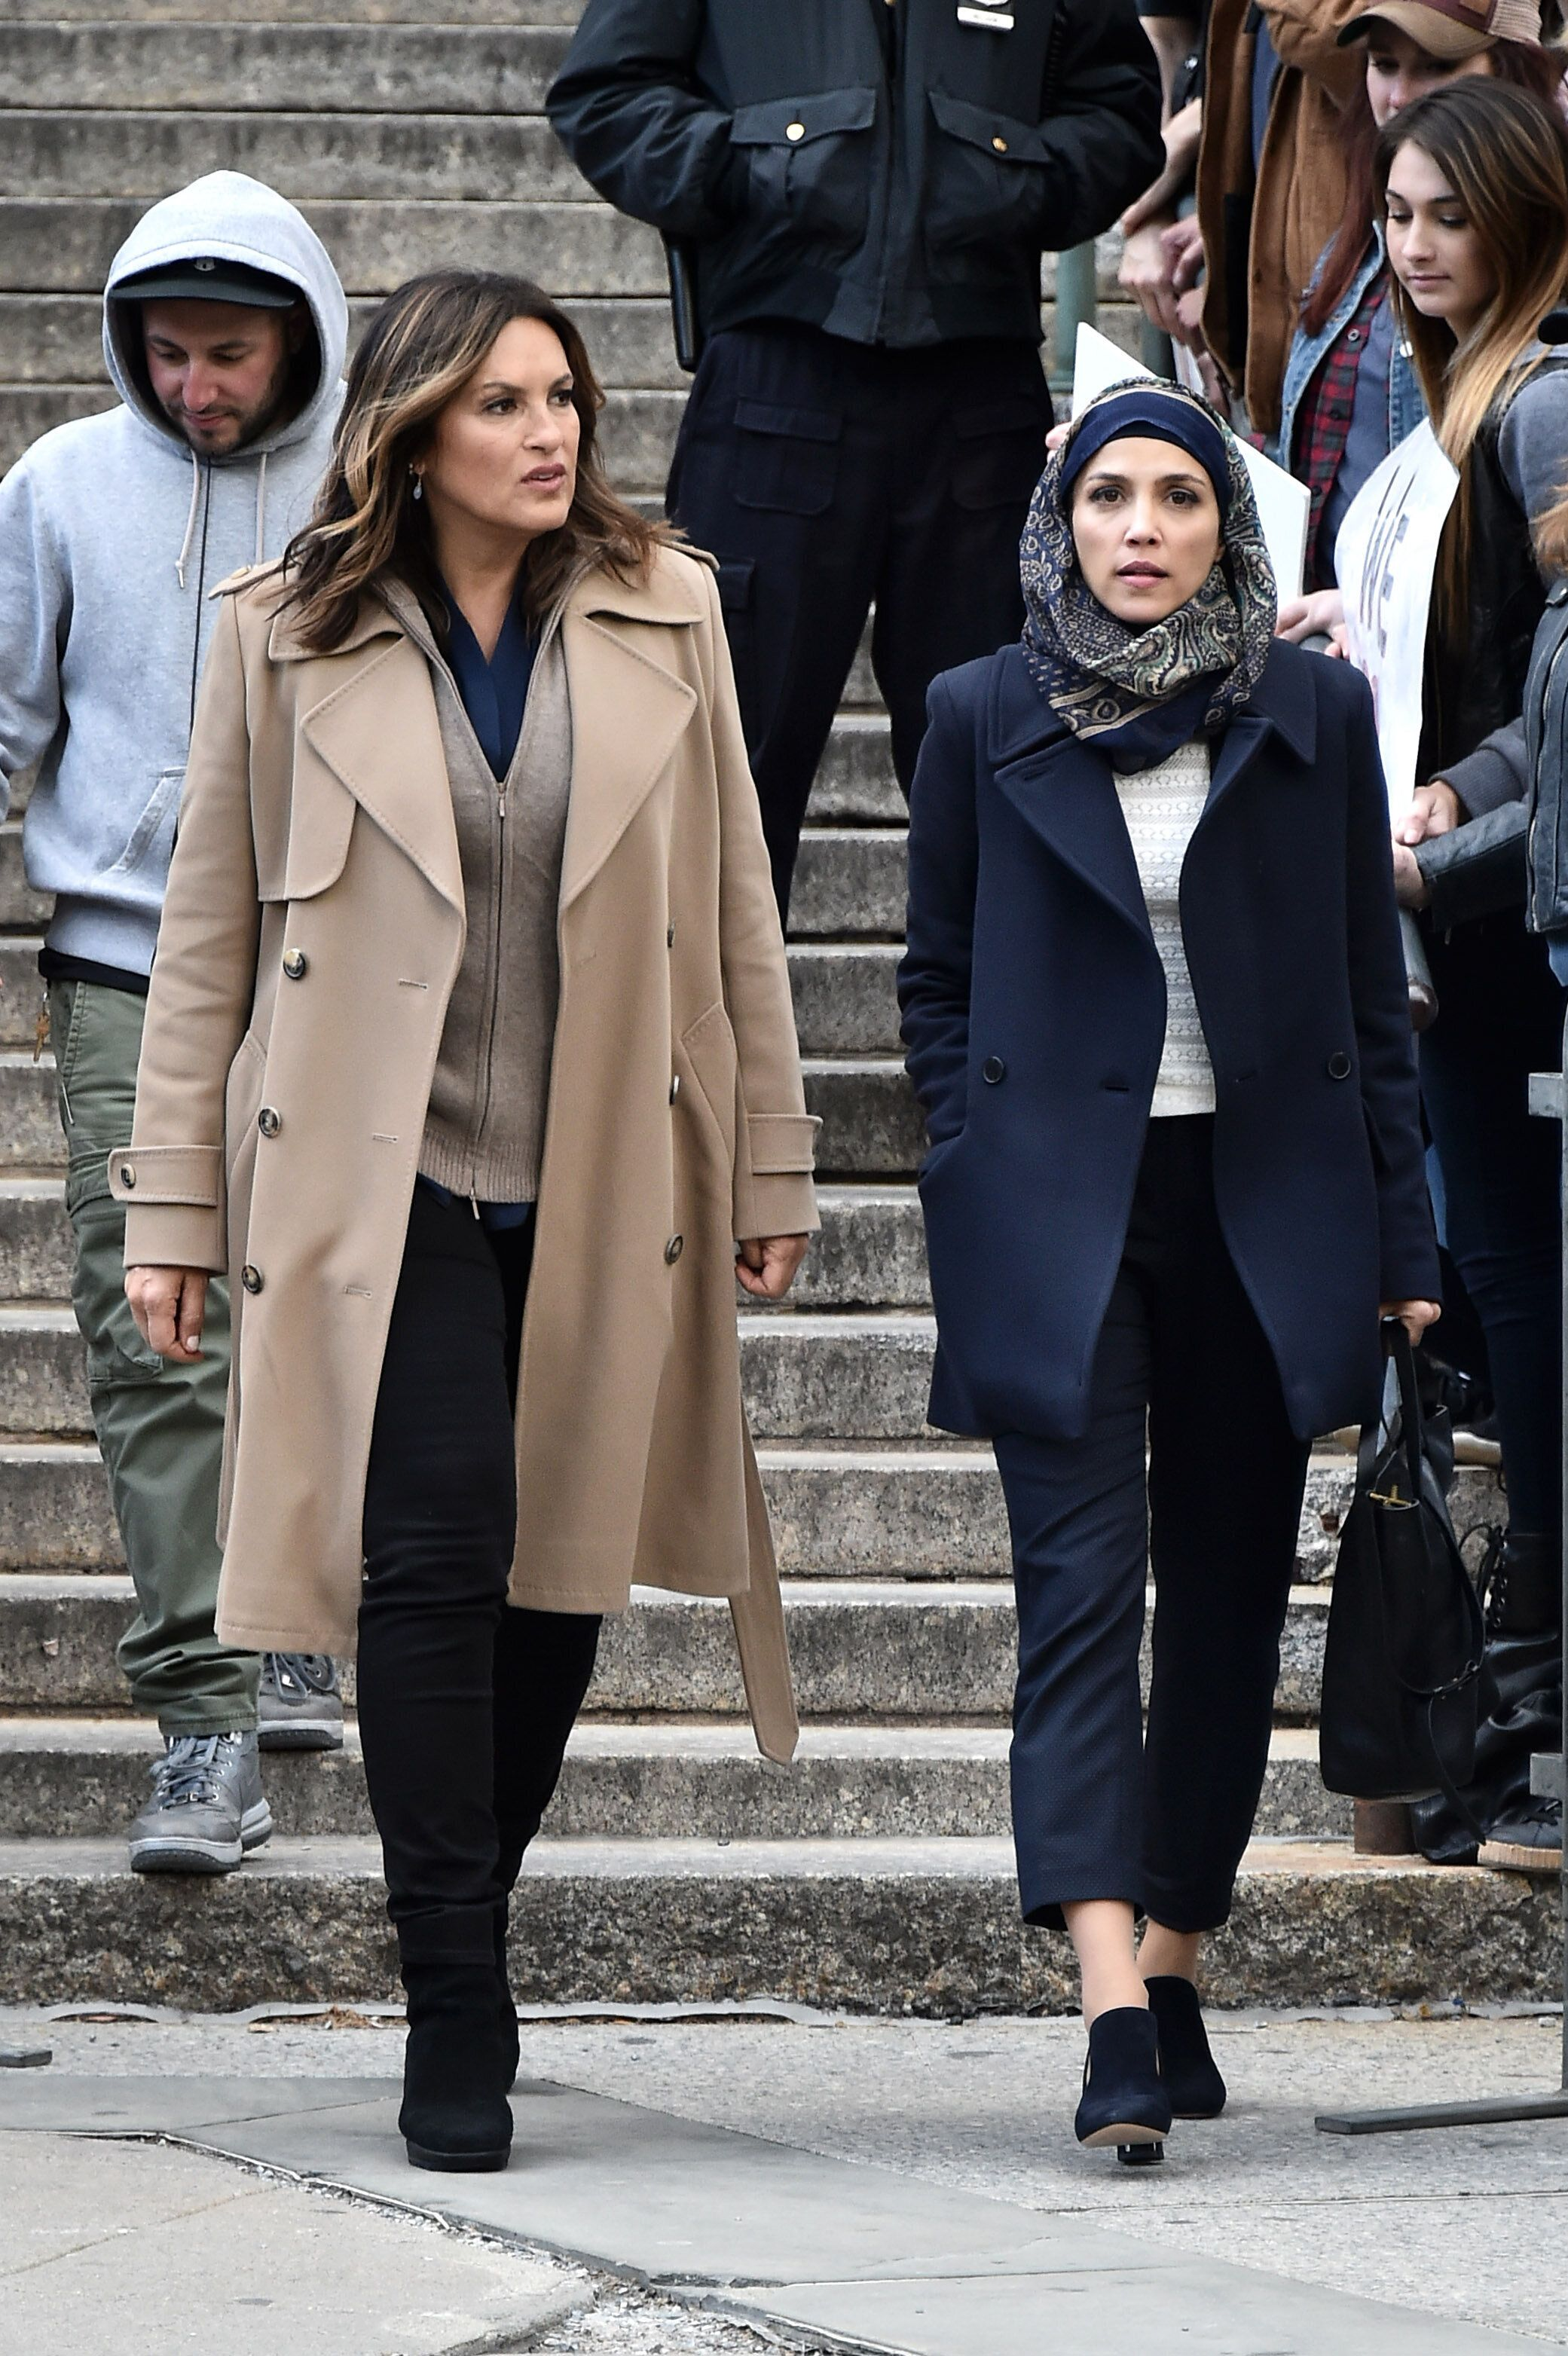 Muslim Group Calls Out 'Law & Order: SVU' For Episode 'Enflaming